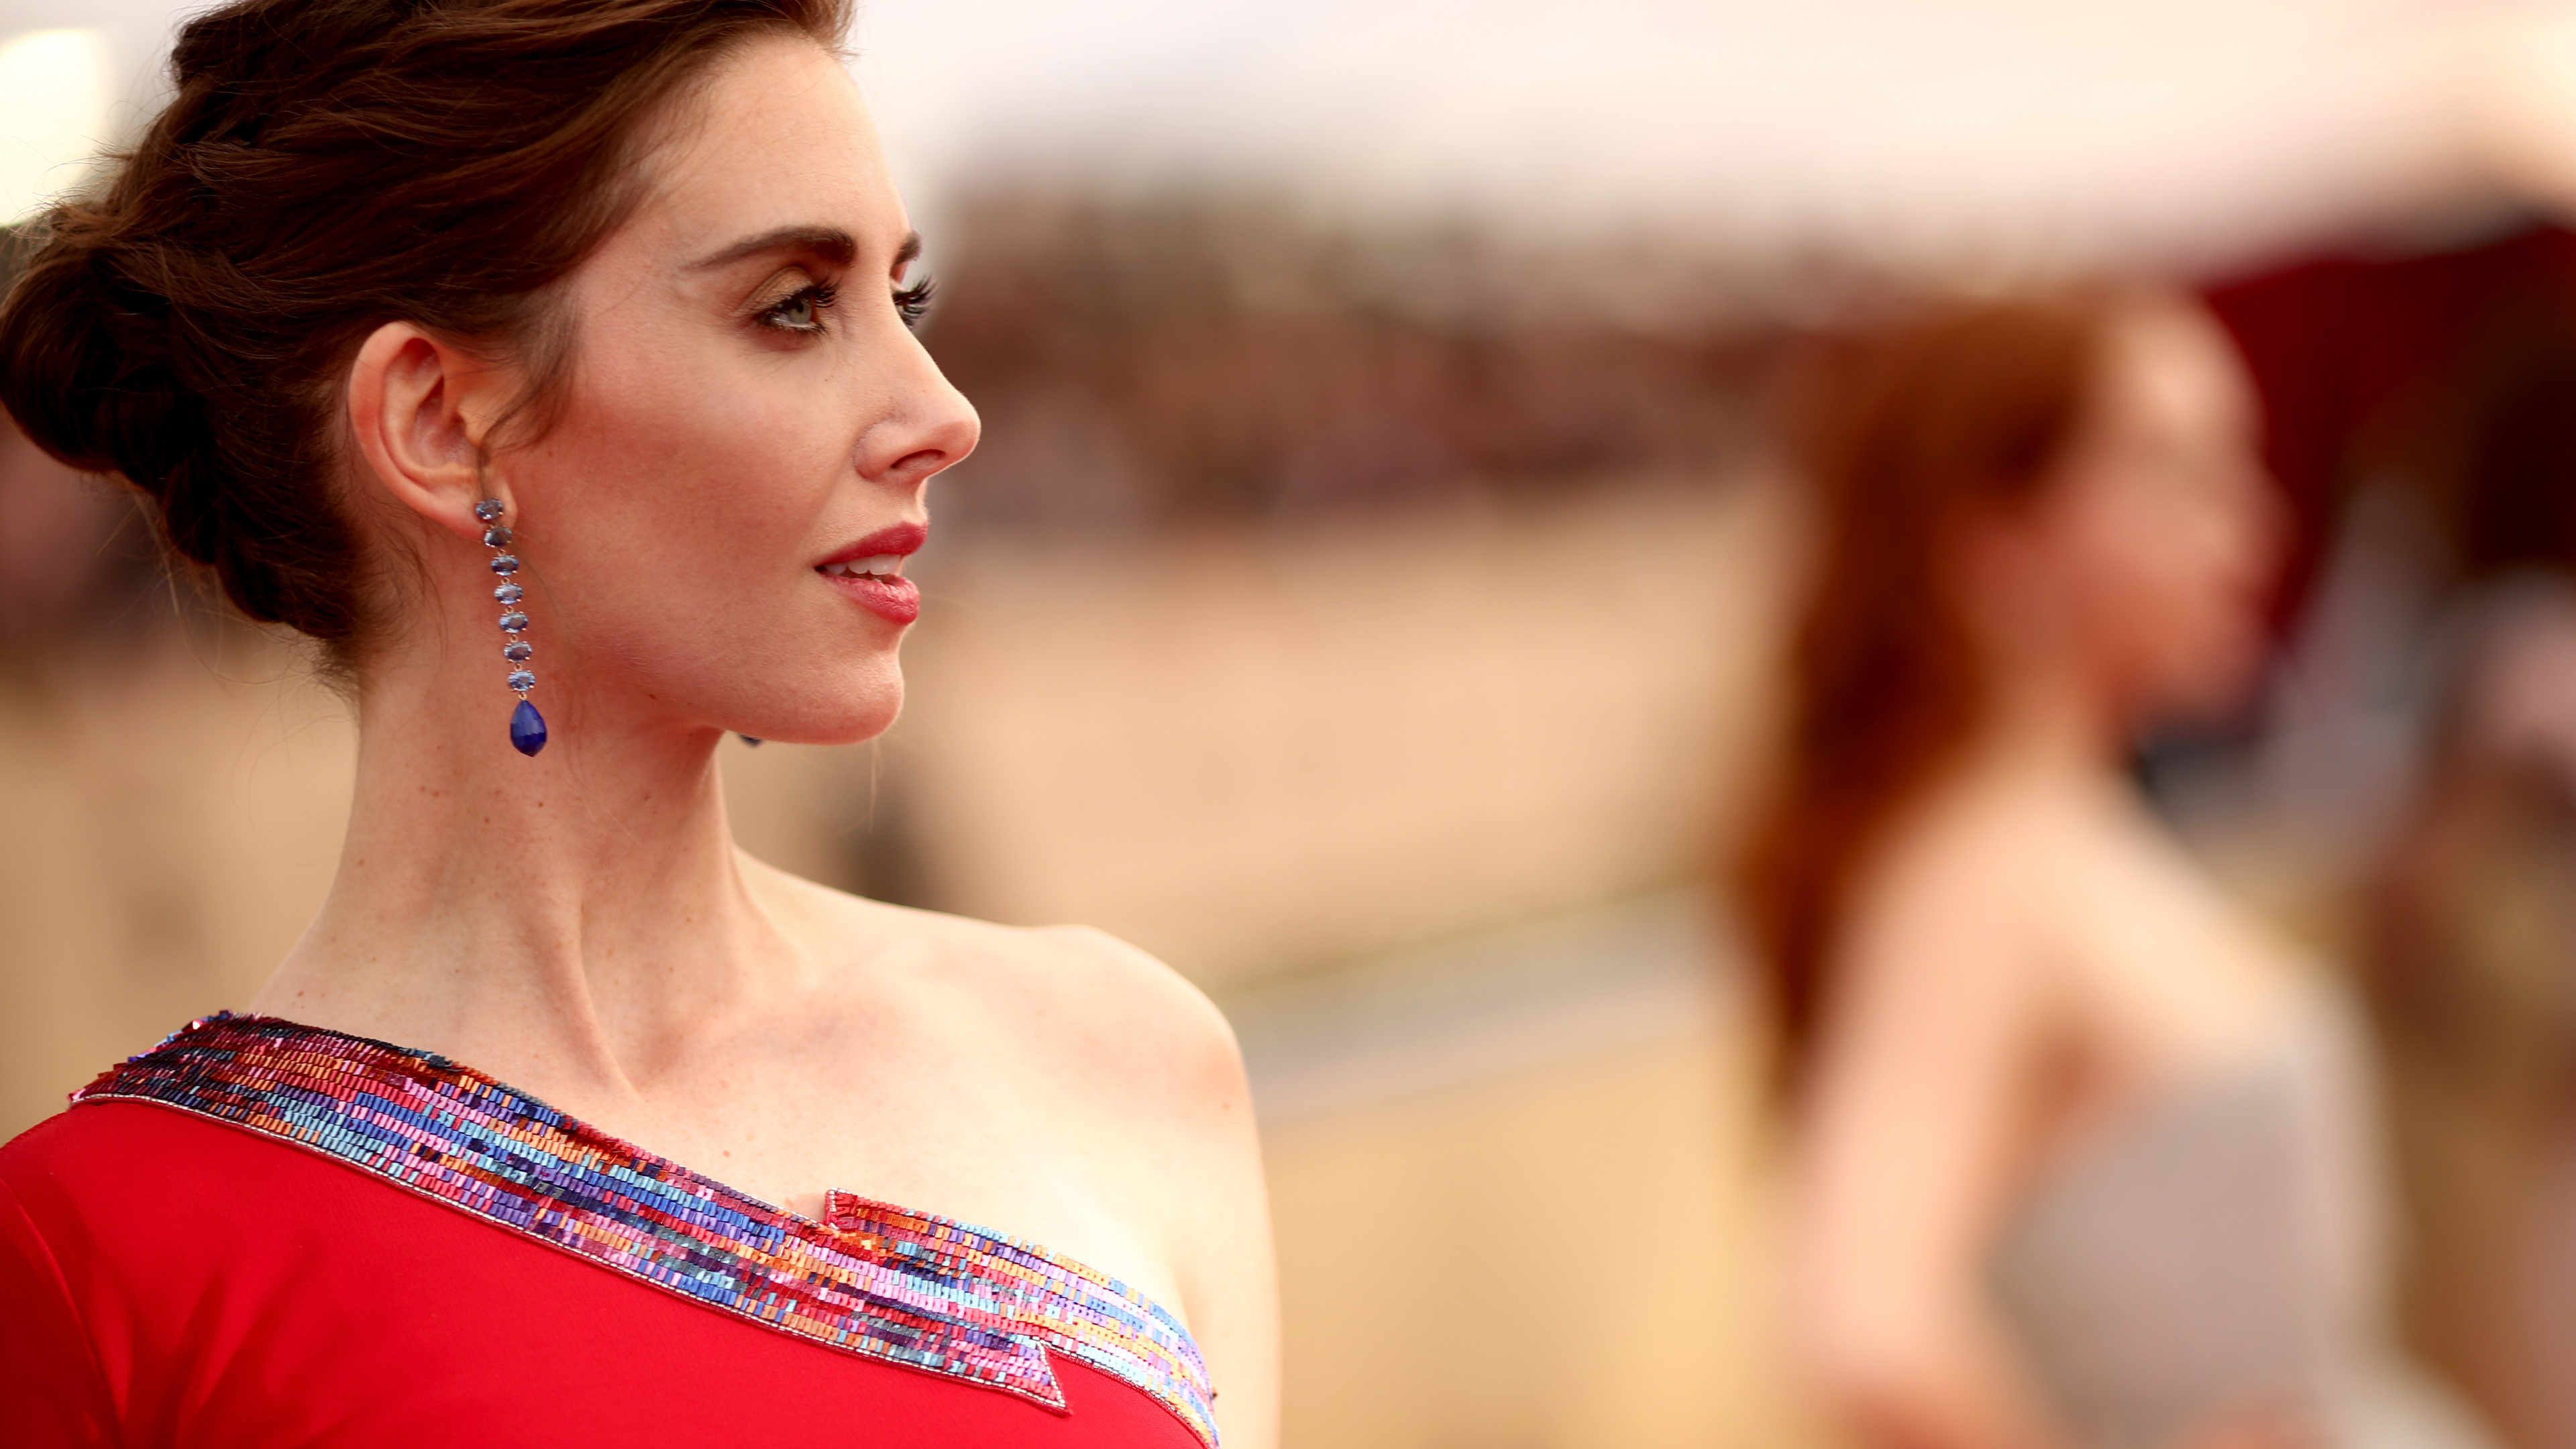 alison brie 2019 1536863001 - Alison Brie 2019 - hd-wallpapers, girls wallpapers, celebrities wallpapers, alison brie wallpapers, 5k wallpapers, 4k-wallpapers